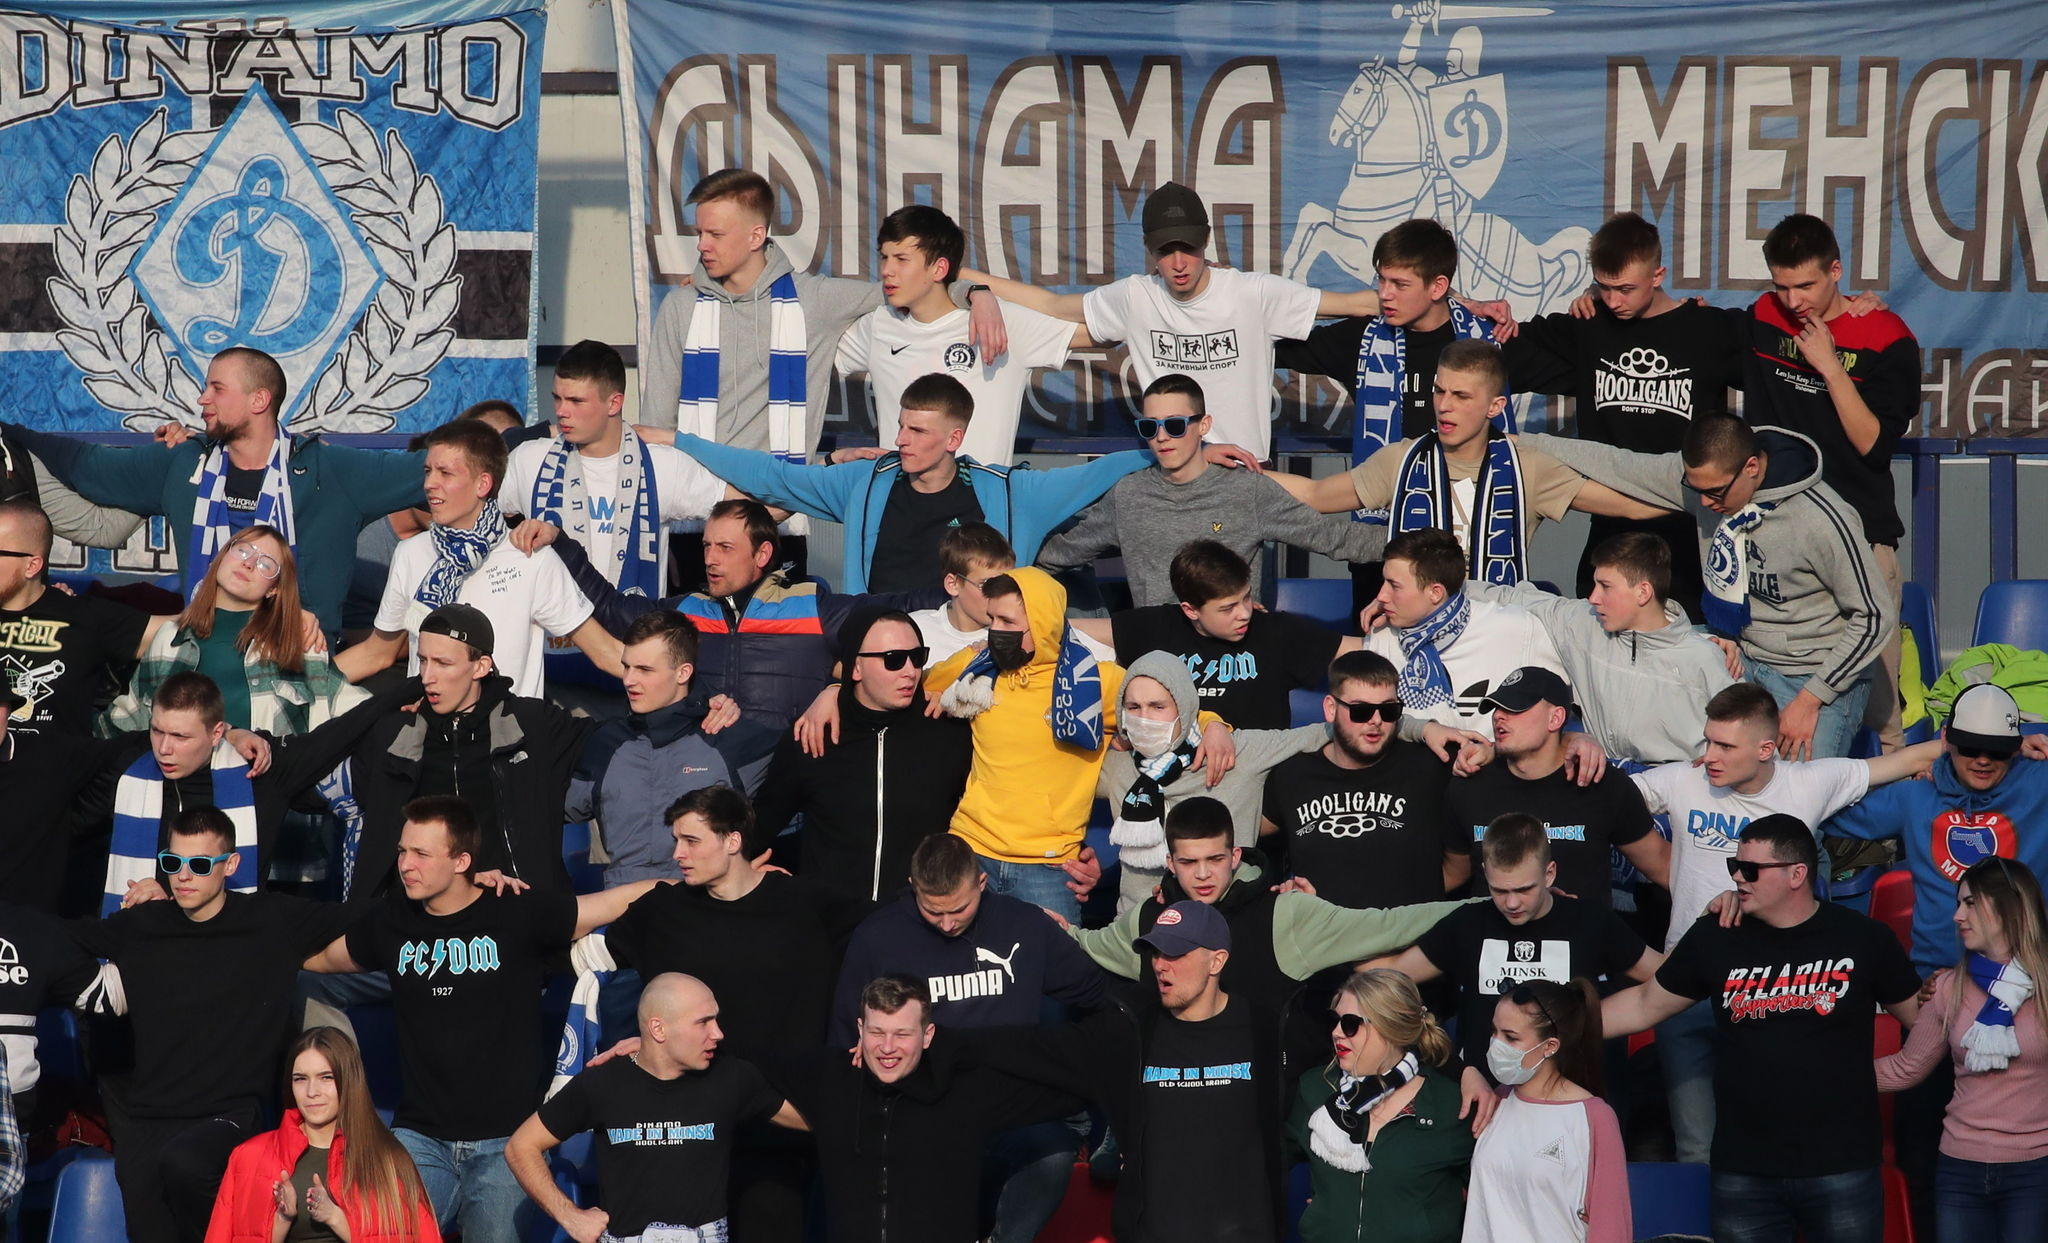 Minsk ( lt;HIT gt;Belarus lt;/HIT gt;), 28/03/2020.- Fans cheer, as they are watching the Belarusian Premier League soccer match between FC Minsk and FC Dinamo-Minsk in Minsk, lt;HIT gt;Belarus lt;/HIT gt;, 28 March 2020. lt;HIT gt;Belarus lt;/HIT gt; didnt suspend soccer games, as most of European countries did because of coronavirus COVID19 pandemic. lt;HIT gt;Belarus lt;/HIT gt; plans to hold all soccer matches, as scheduled, local media reports. (Bielorrusia) EFE/EPA/TATYANA ZENKOVICH